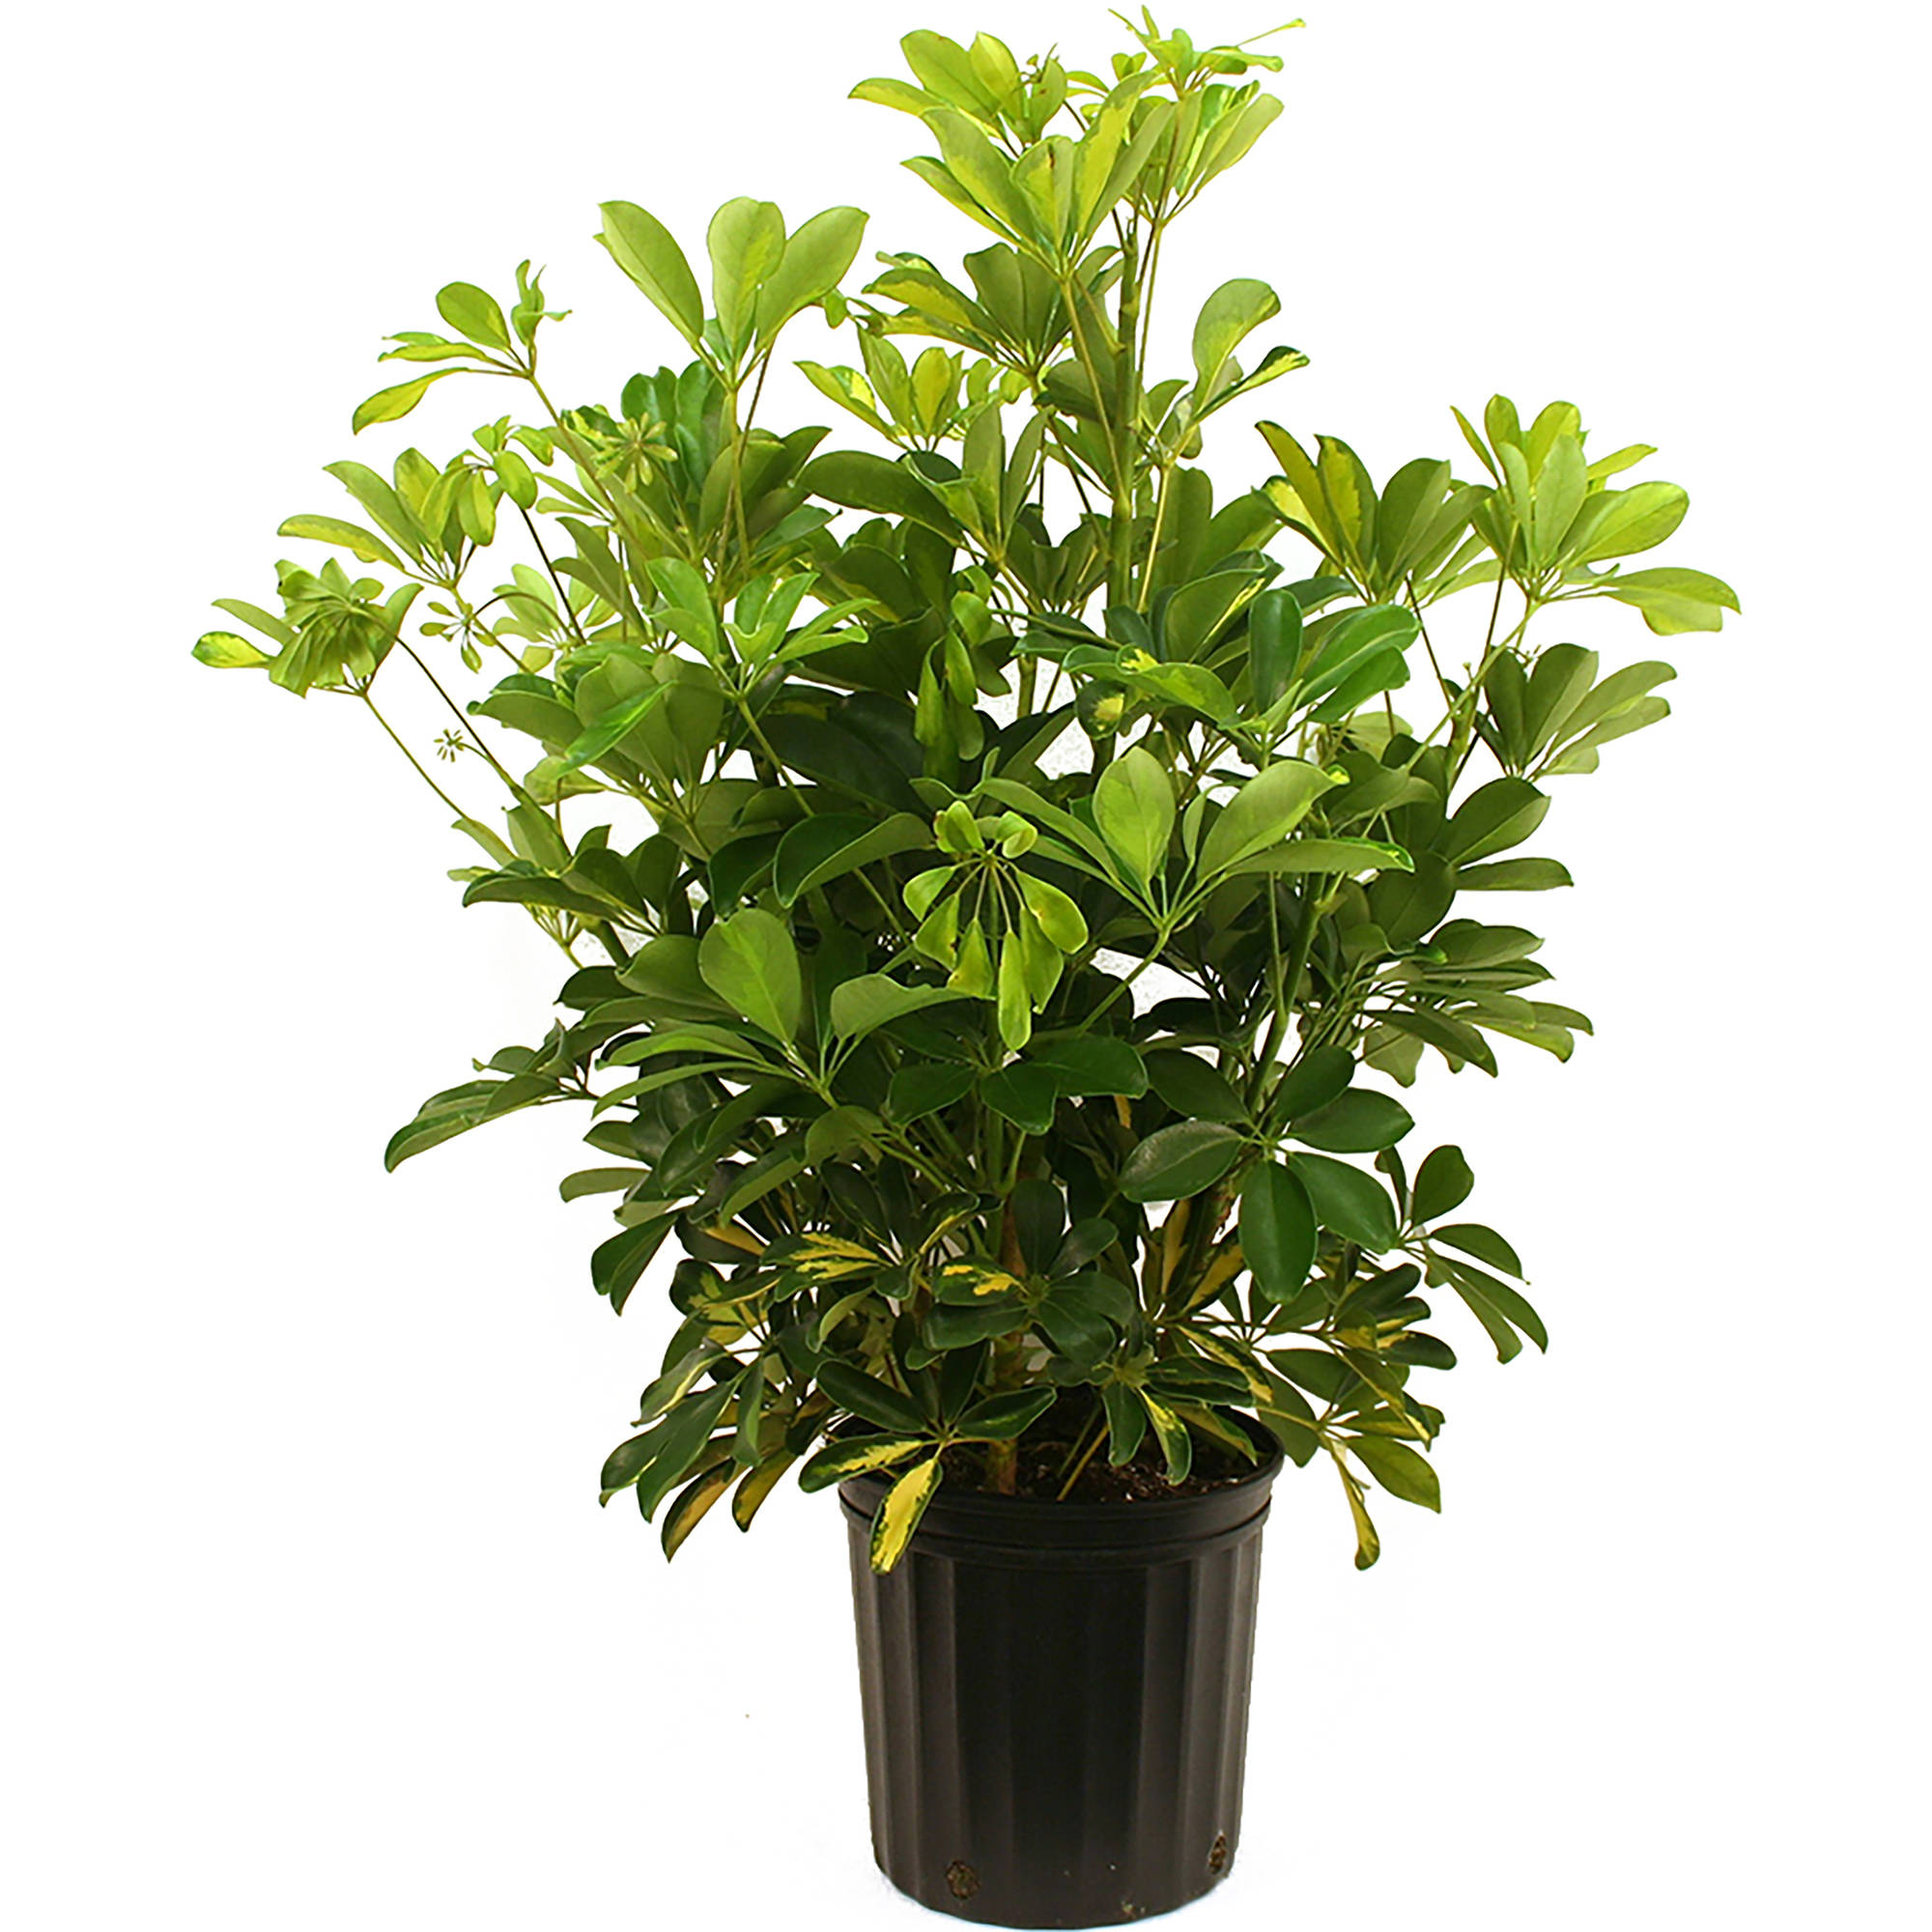 Delray Plants Schefflera Arboricola Gold Capella Easy To Grow Live